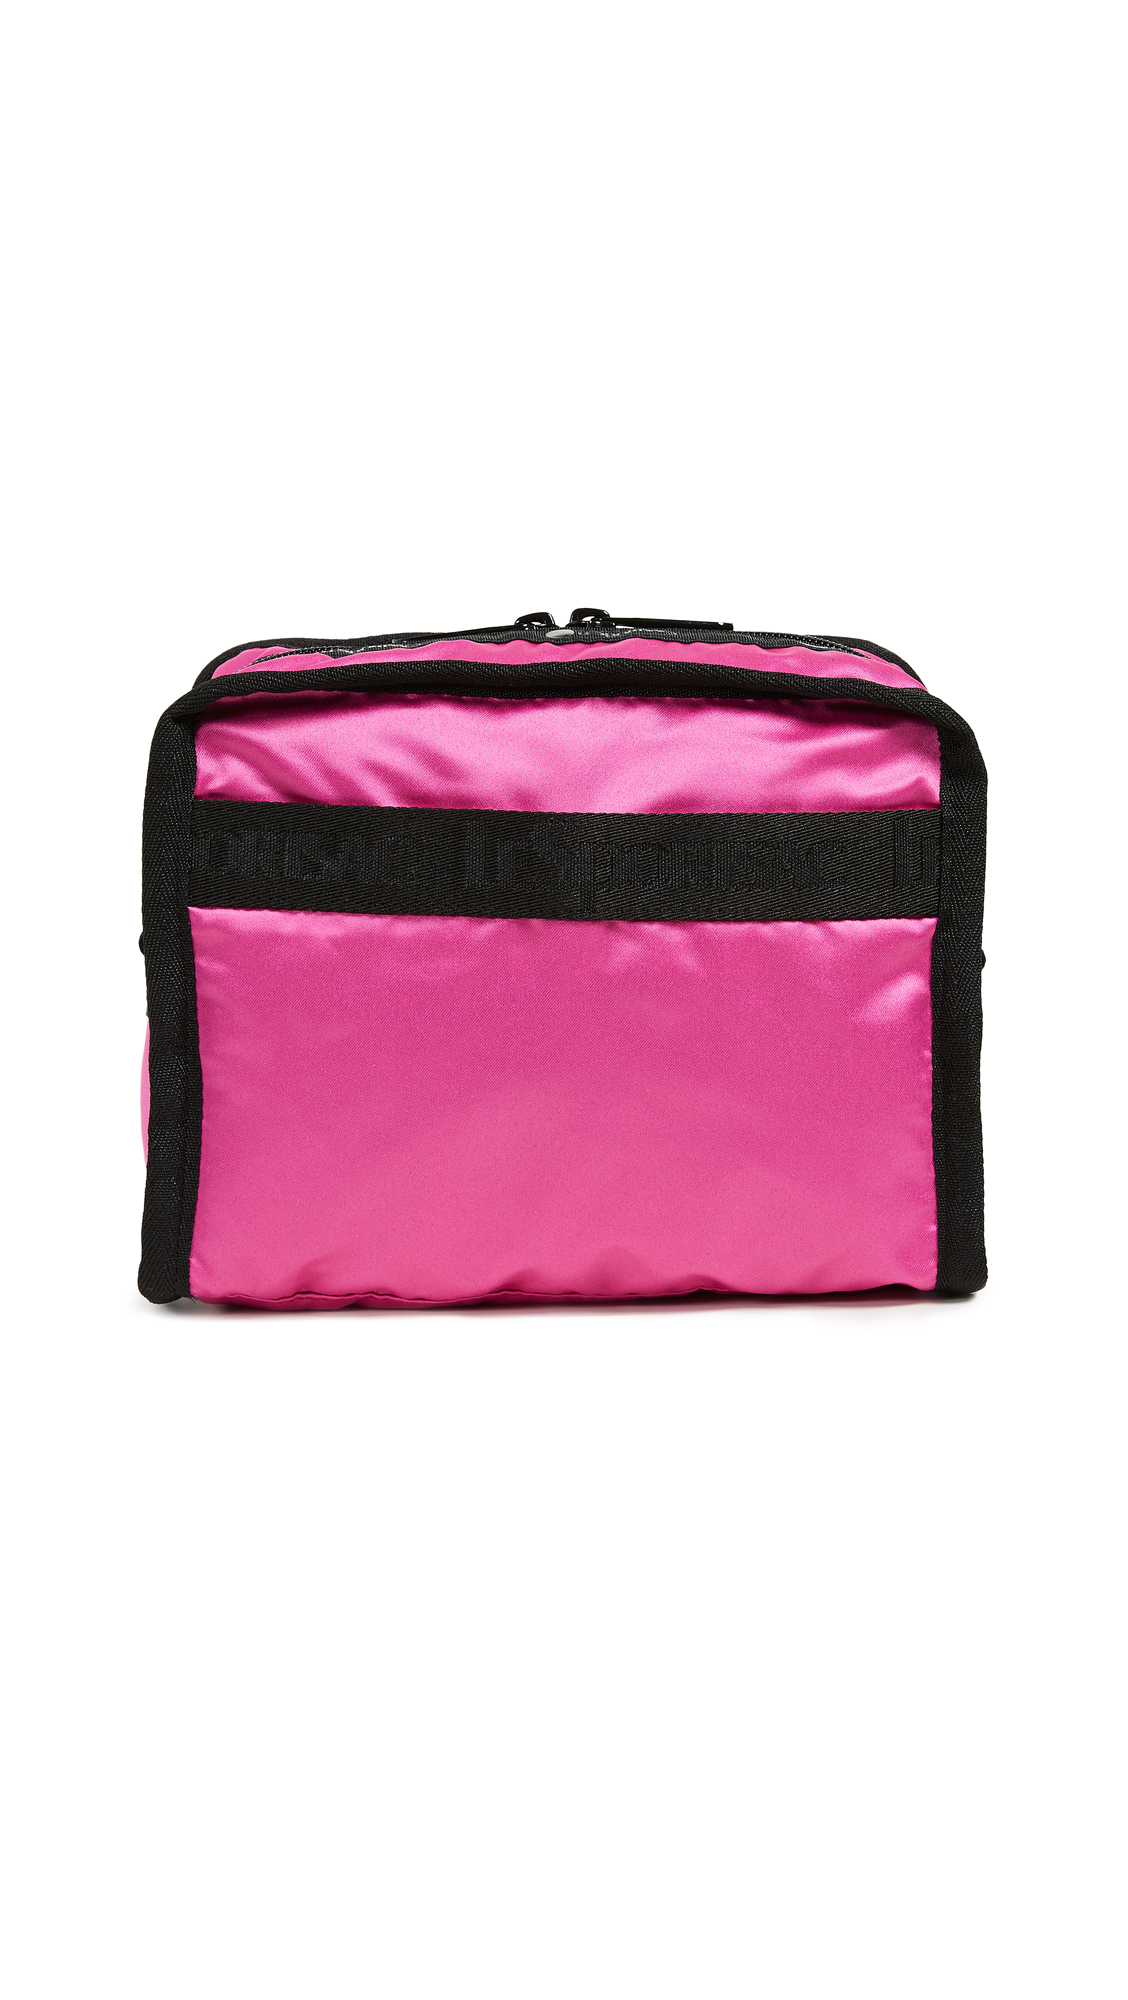 Taylor North / South Cosmetic Bag, Magenta